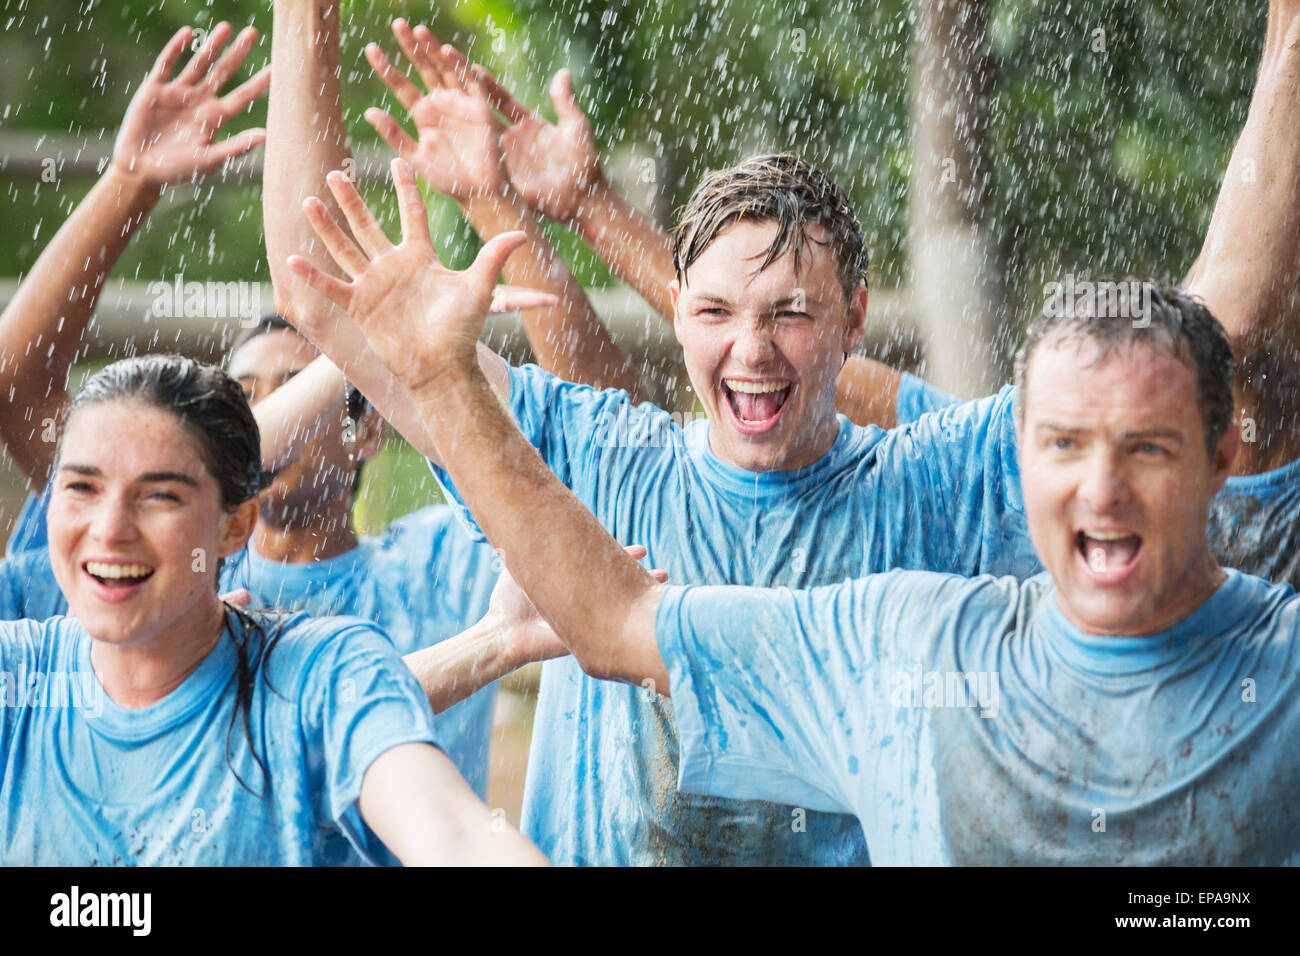 enthusiasm team cheering rain boot camp - Stock Image